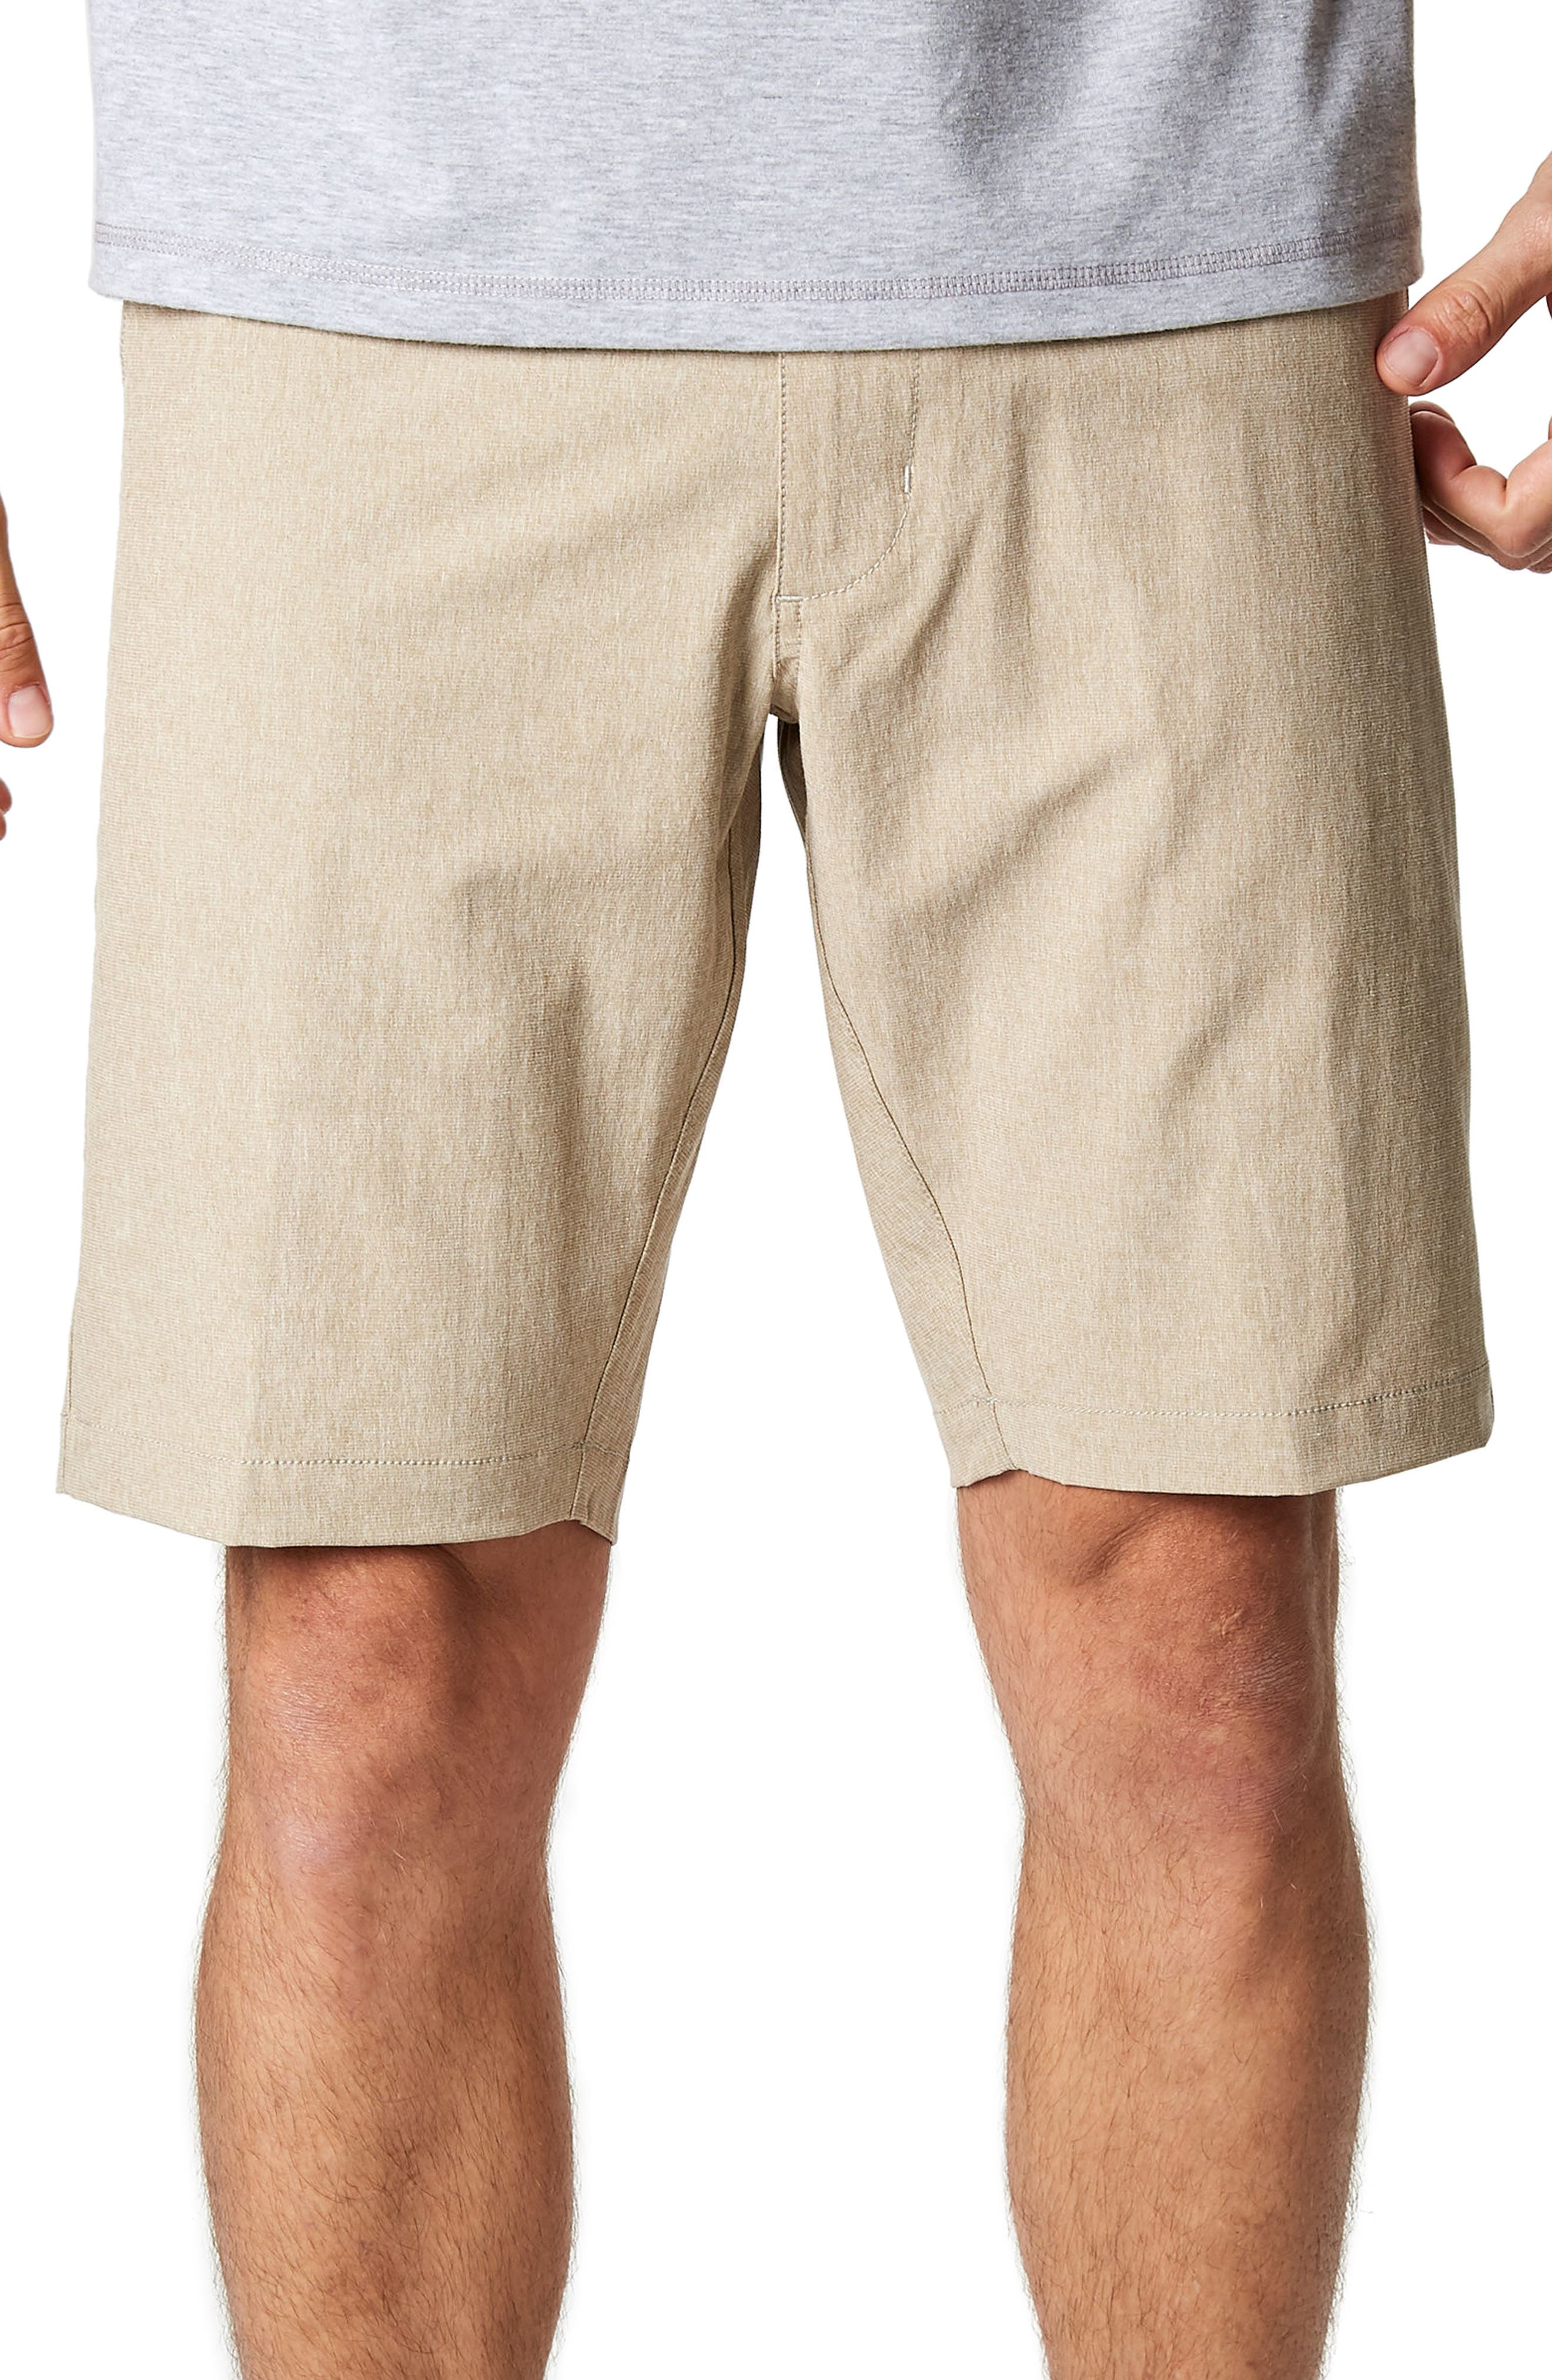 Adrenaline Stretch Shorts,                         Main,                         color, Khaki